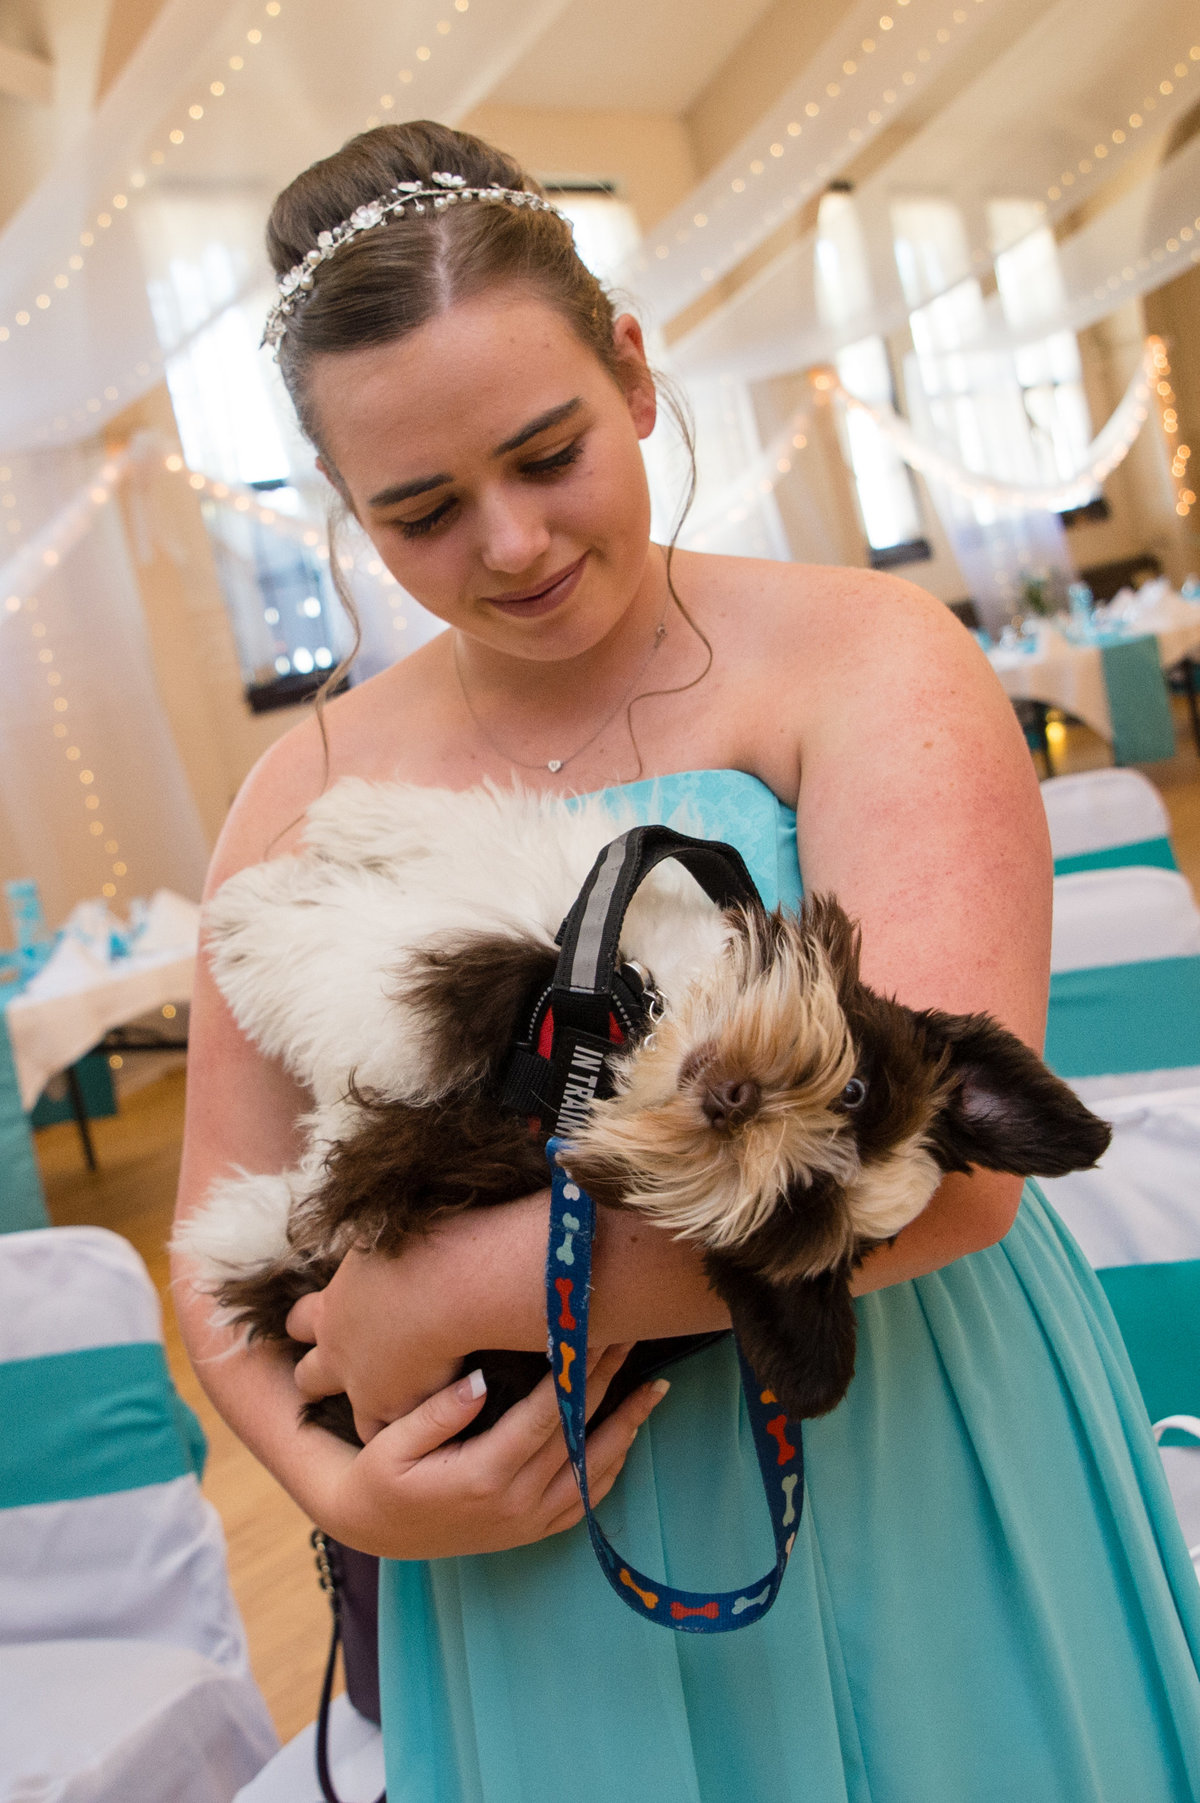 wedding service dog upside down adorable face